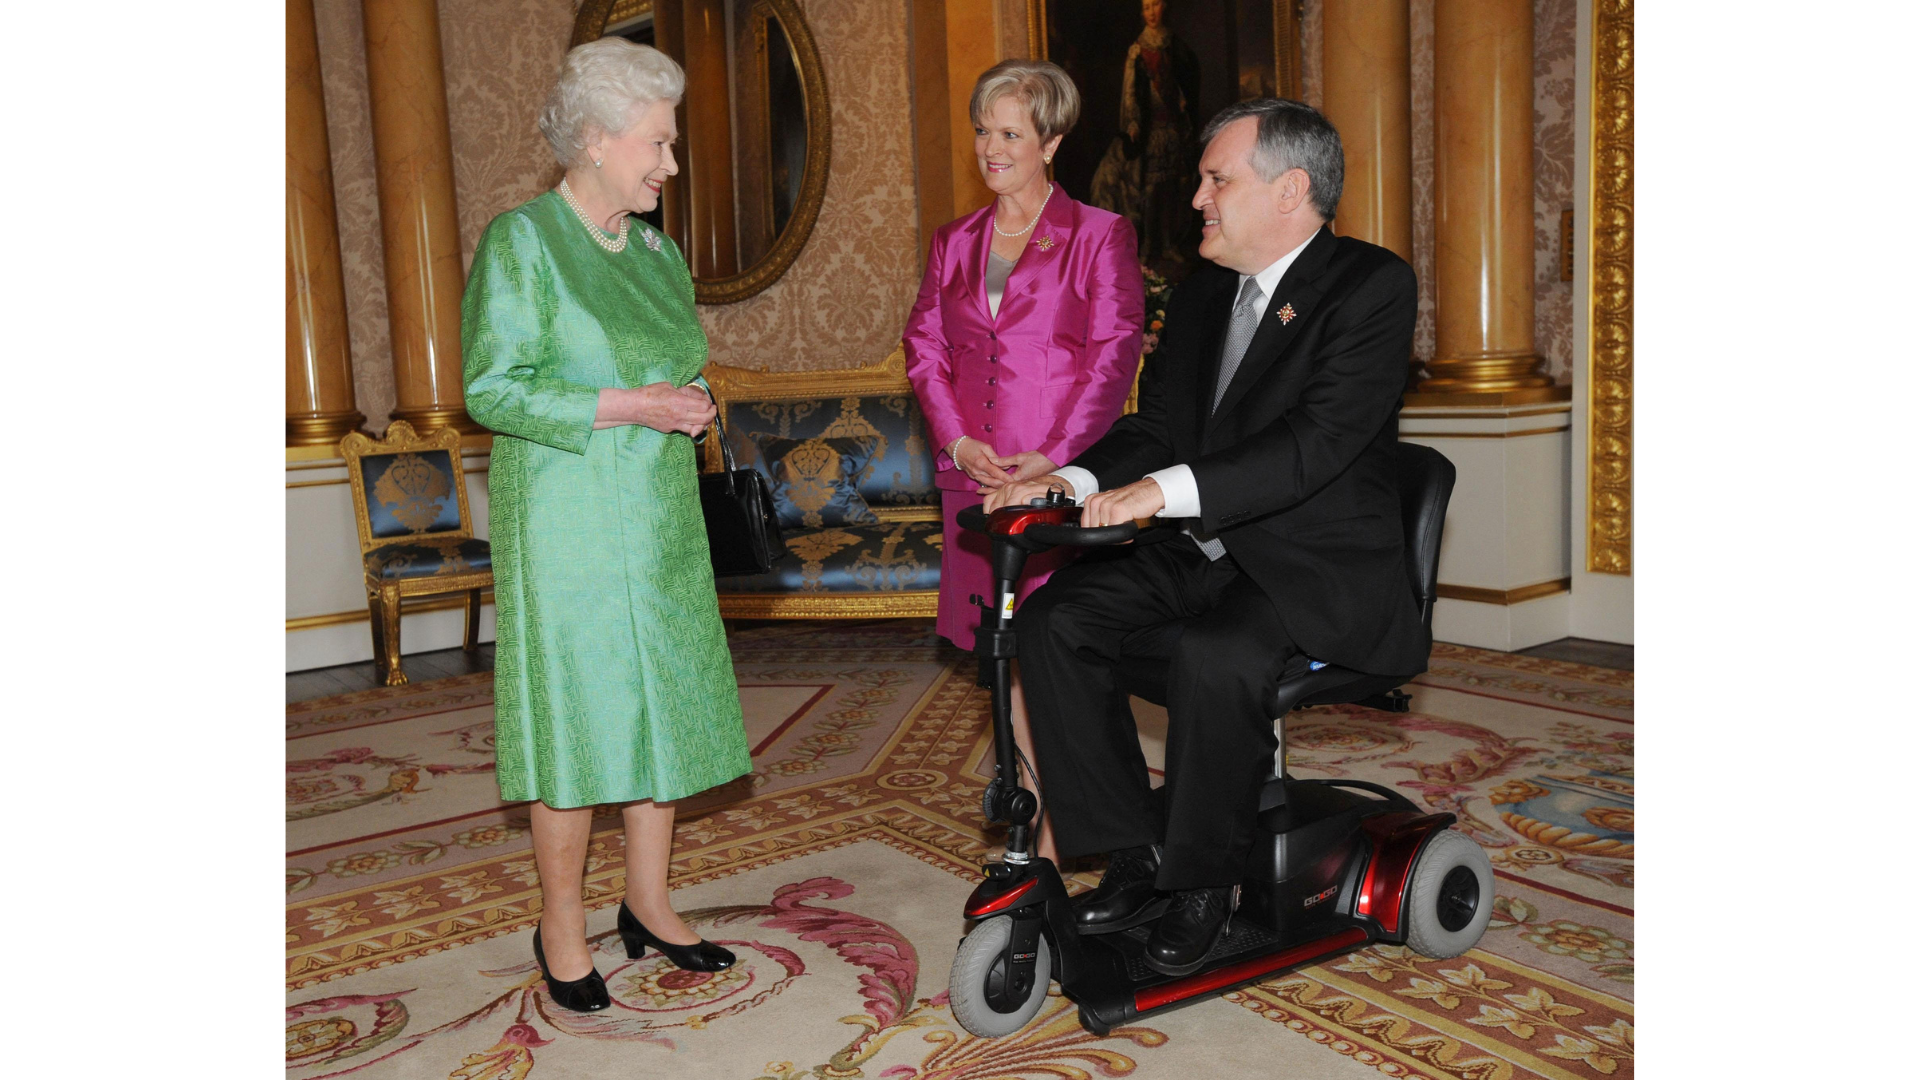 The Queen smiles at David Onley, a man in a wheelchair, in a carpeted room